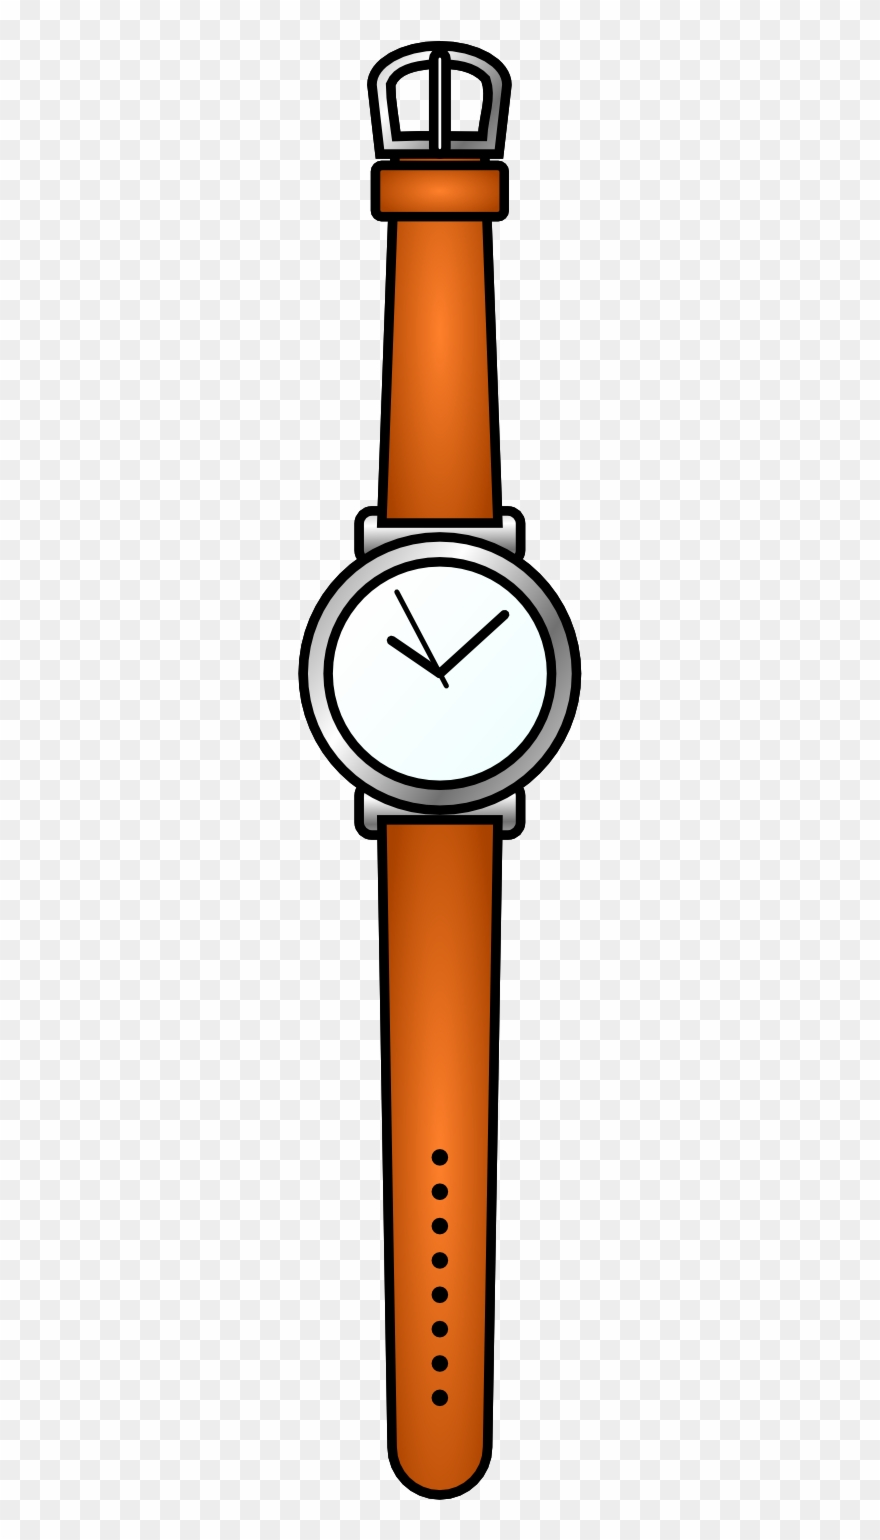 Watch on hand clipart svg royalty free download Hand Watch Clipart 101 Clip Art - Png Download (#2053378 ... svg royalty free download